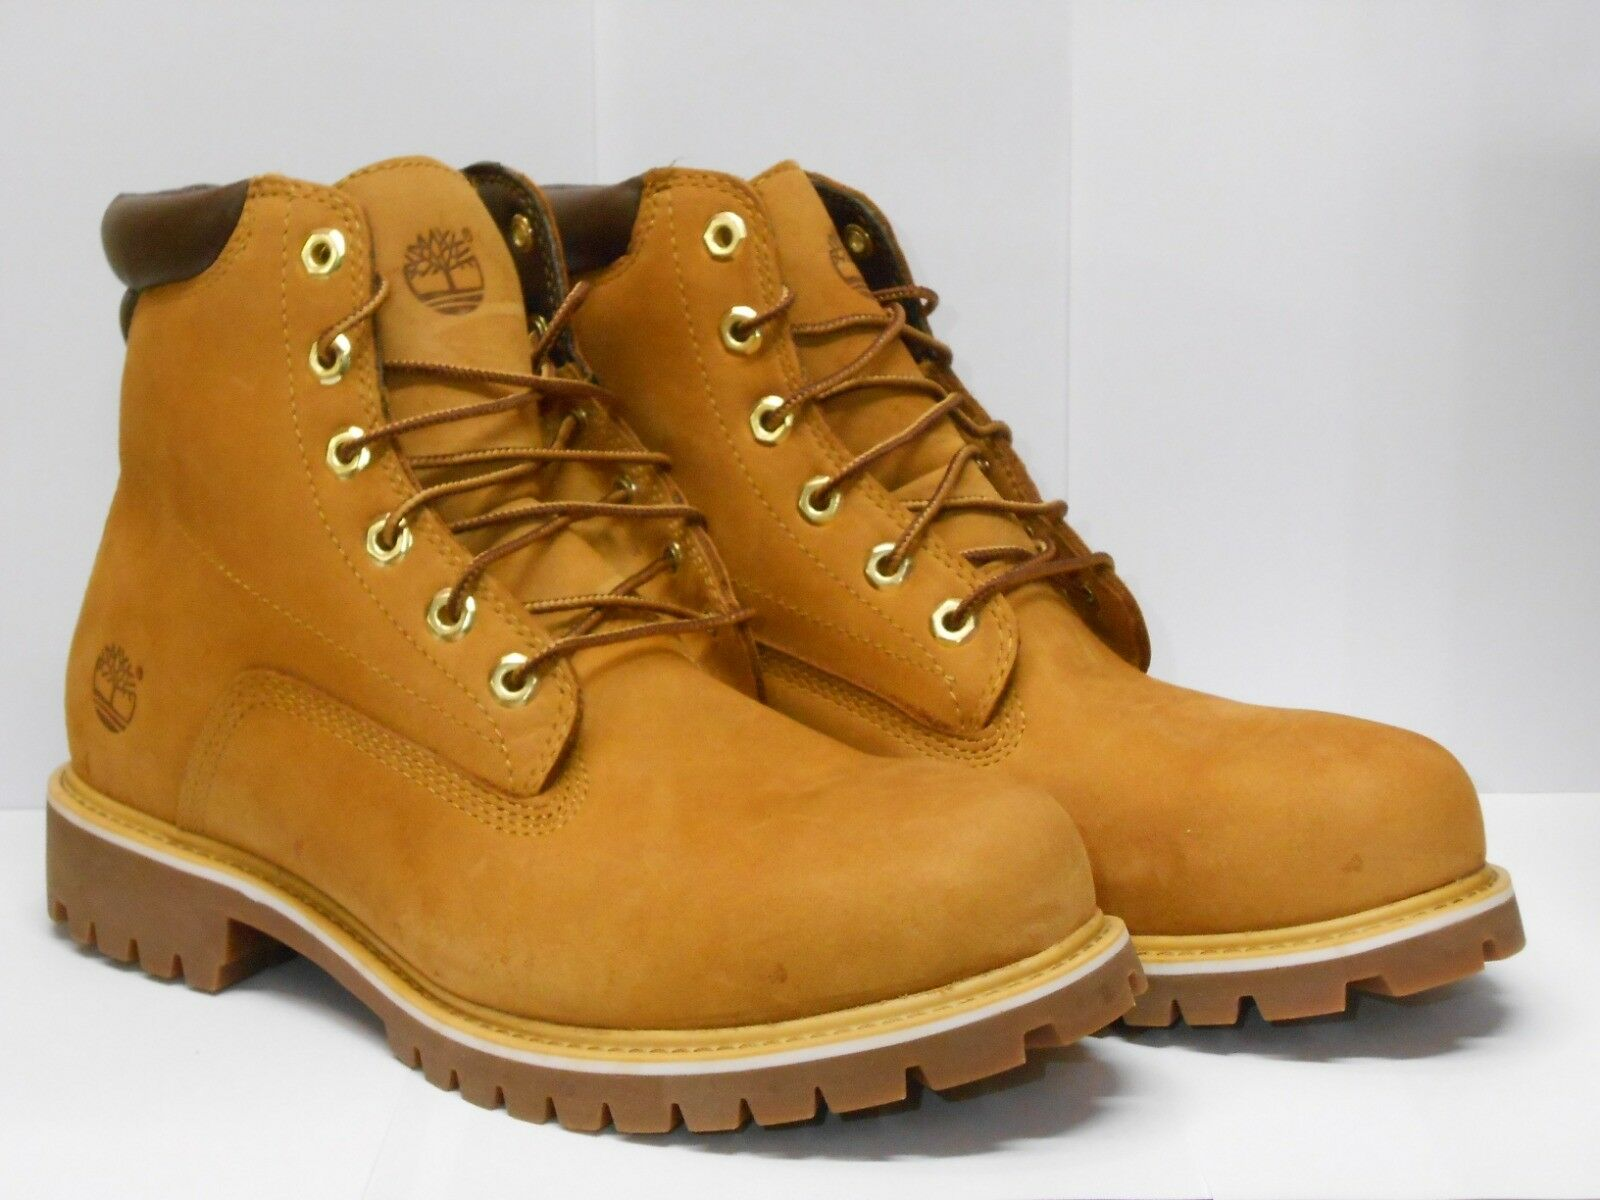 Timberland 6 in Premium Stiefel Mens  UK Größe 9 Code 35758   -  | Good Design